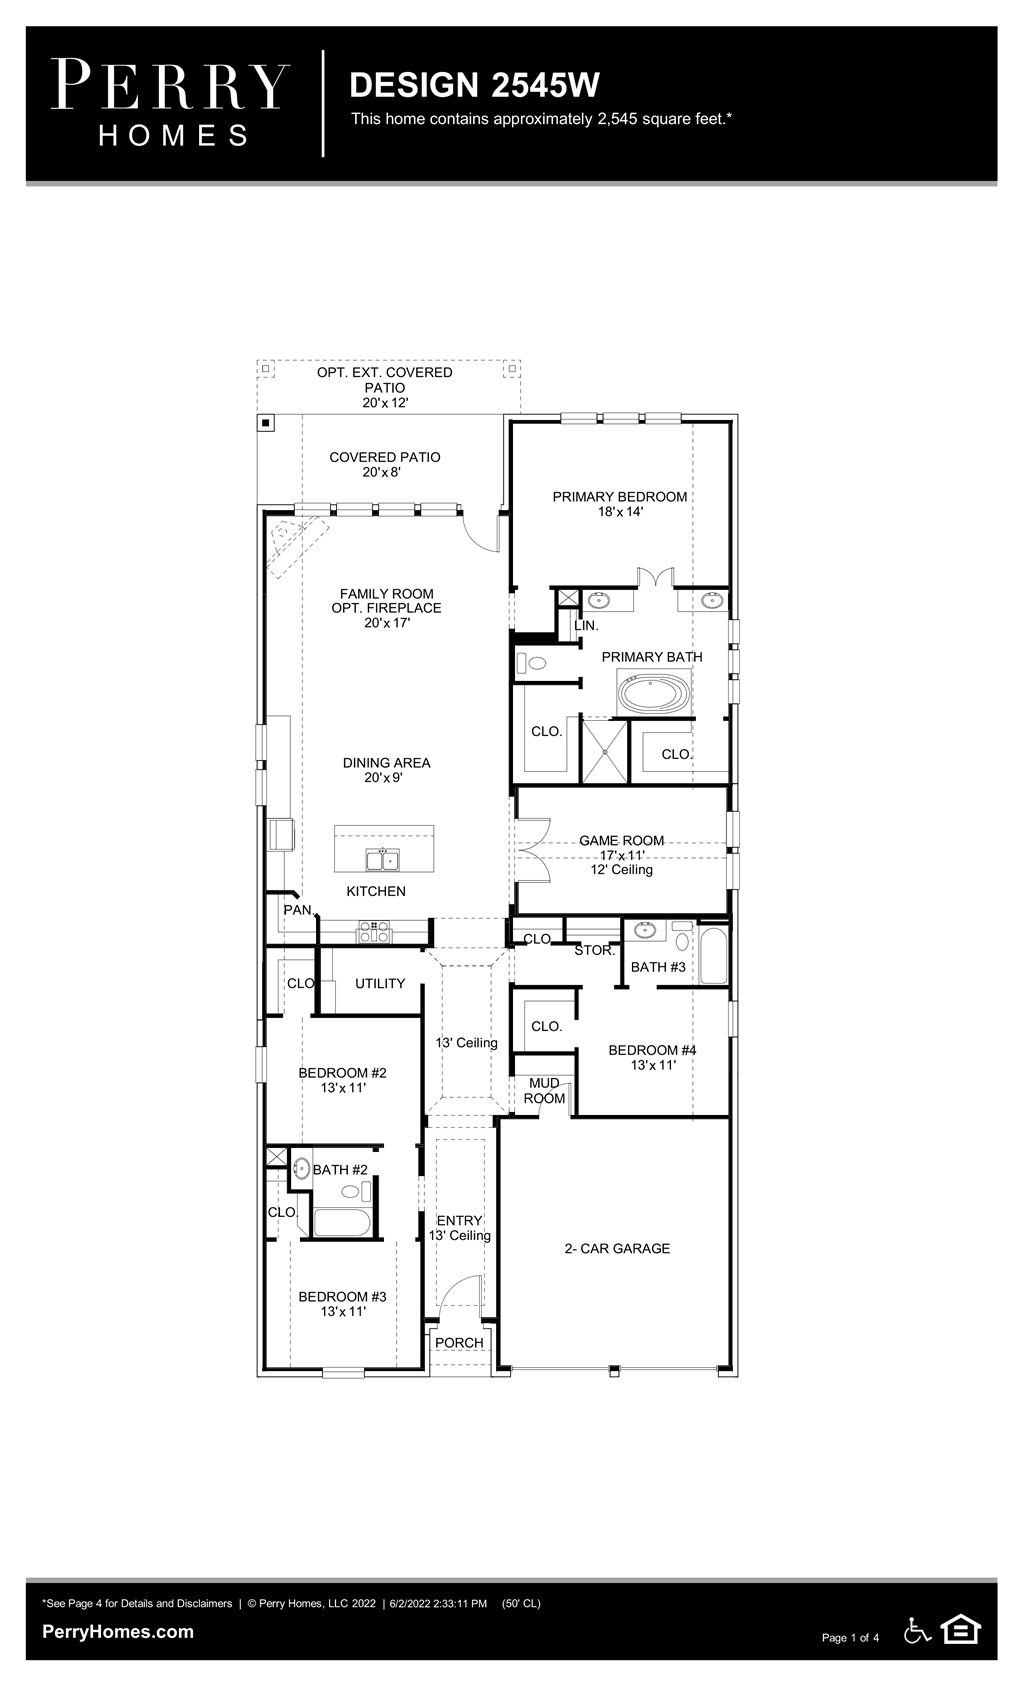 Floor Plan for 2545W